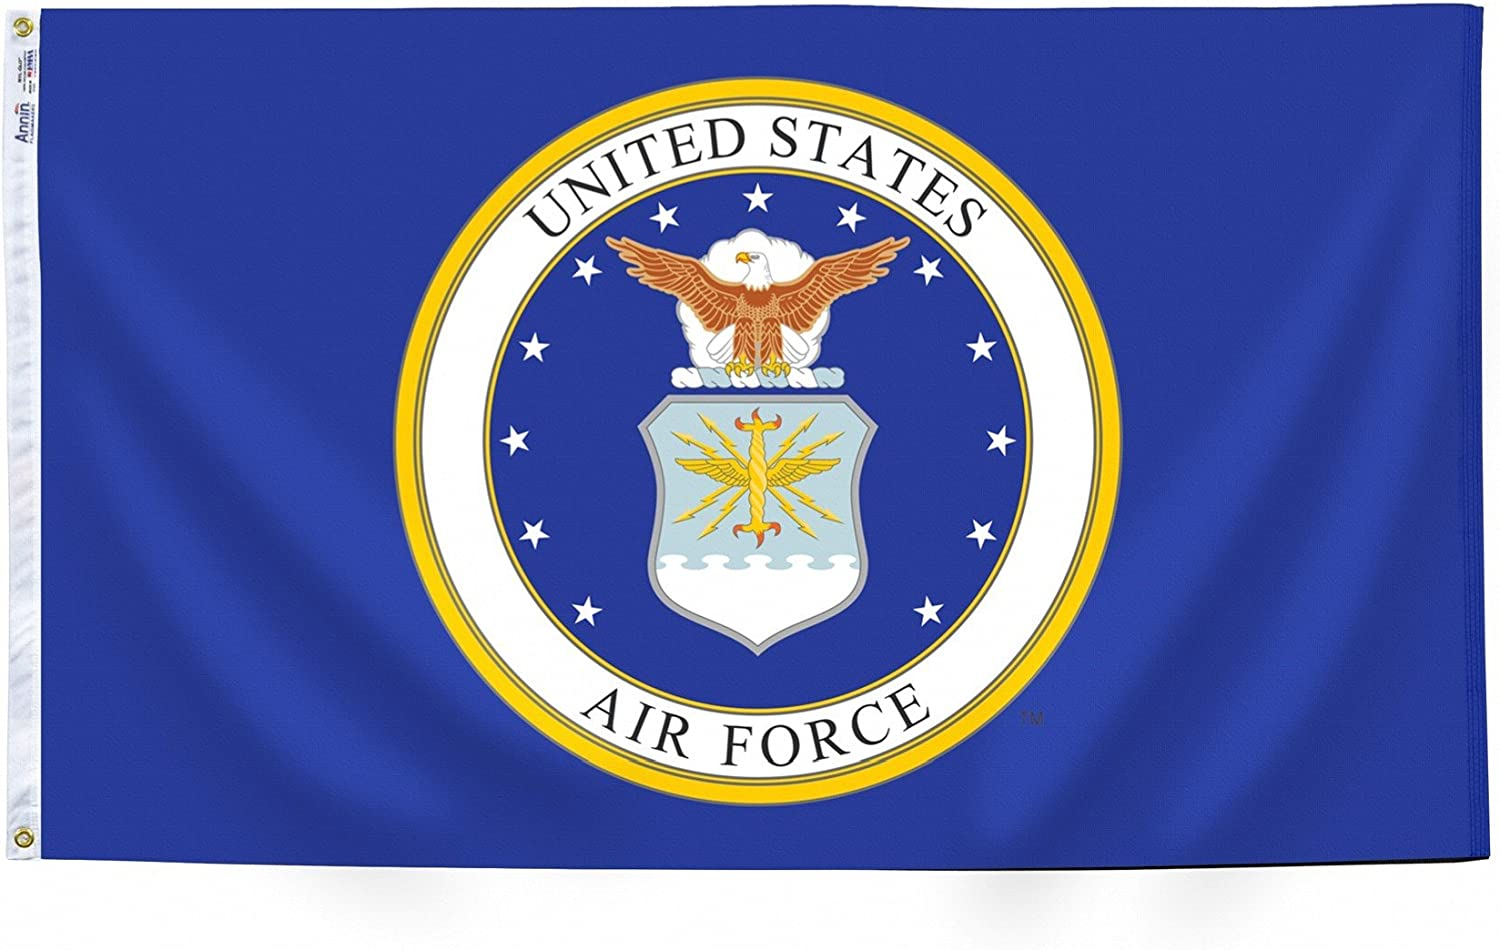 Annin Flagmakers Model 439010 U.S. Airforce Military Flag 3x5 ft. Nylon SolarGuard Nyl-Glo 100% Made in USA to Official Specifications. Officially Licensed Manufacturer.